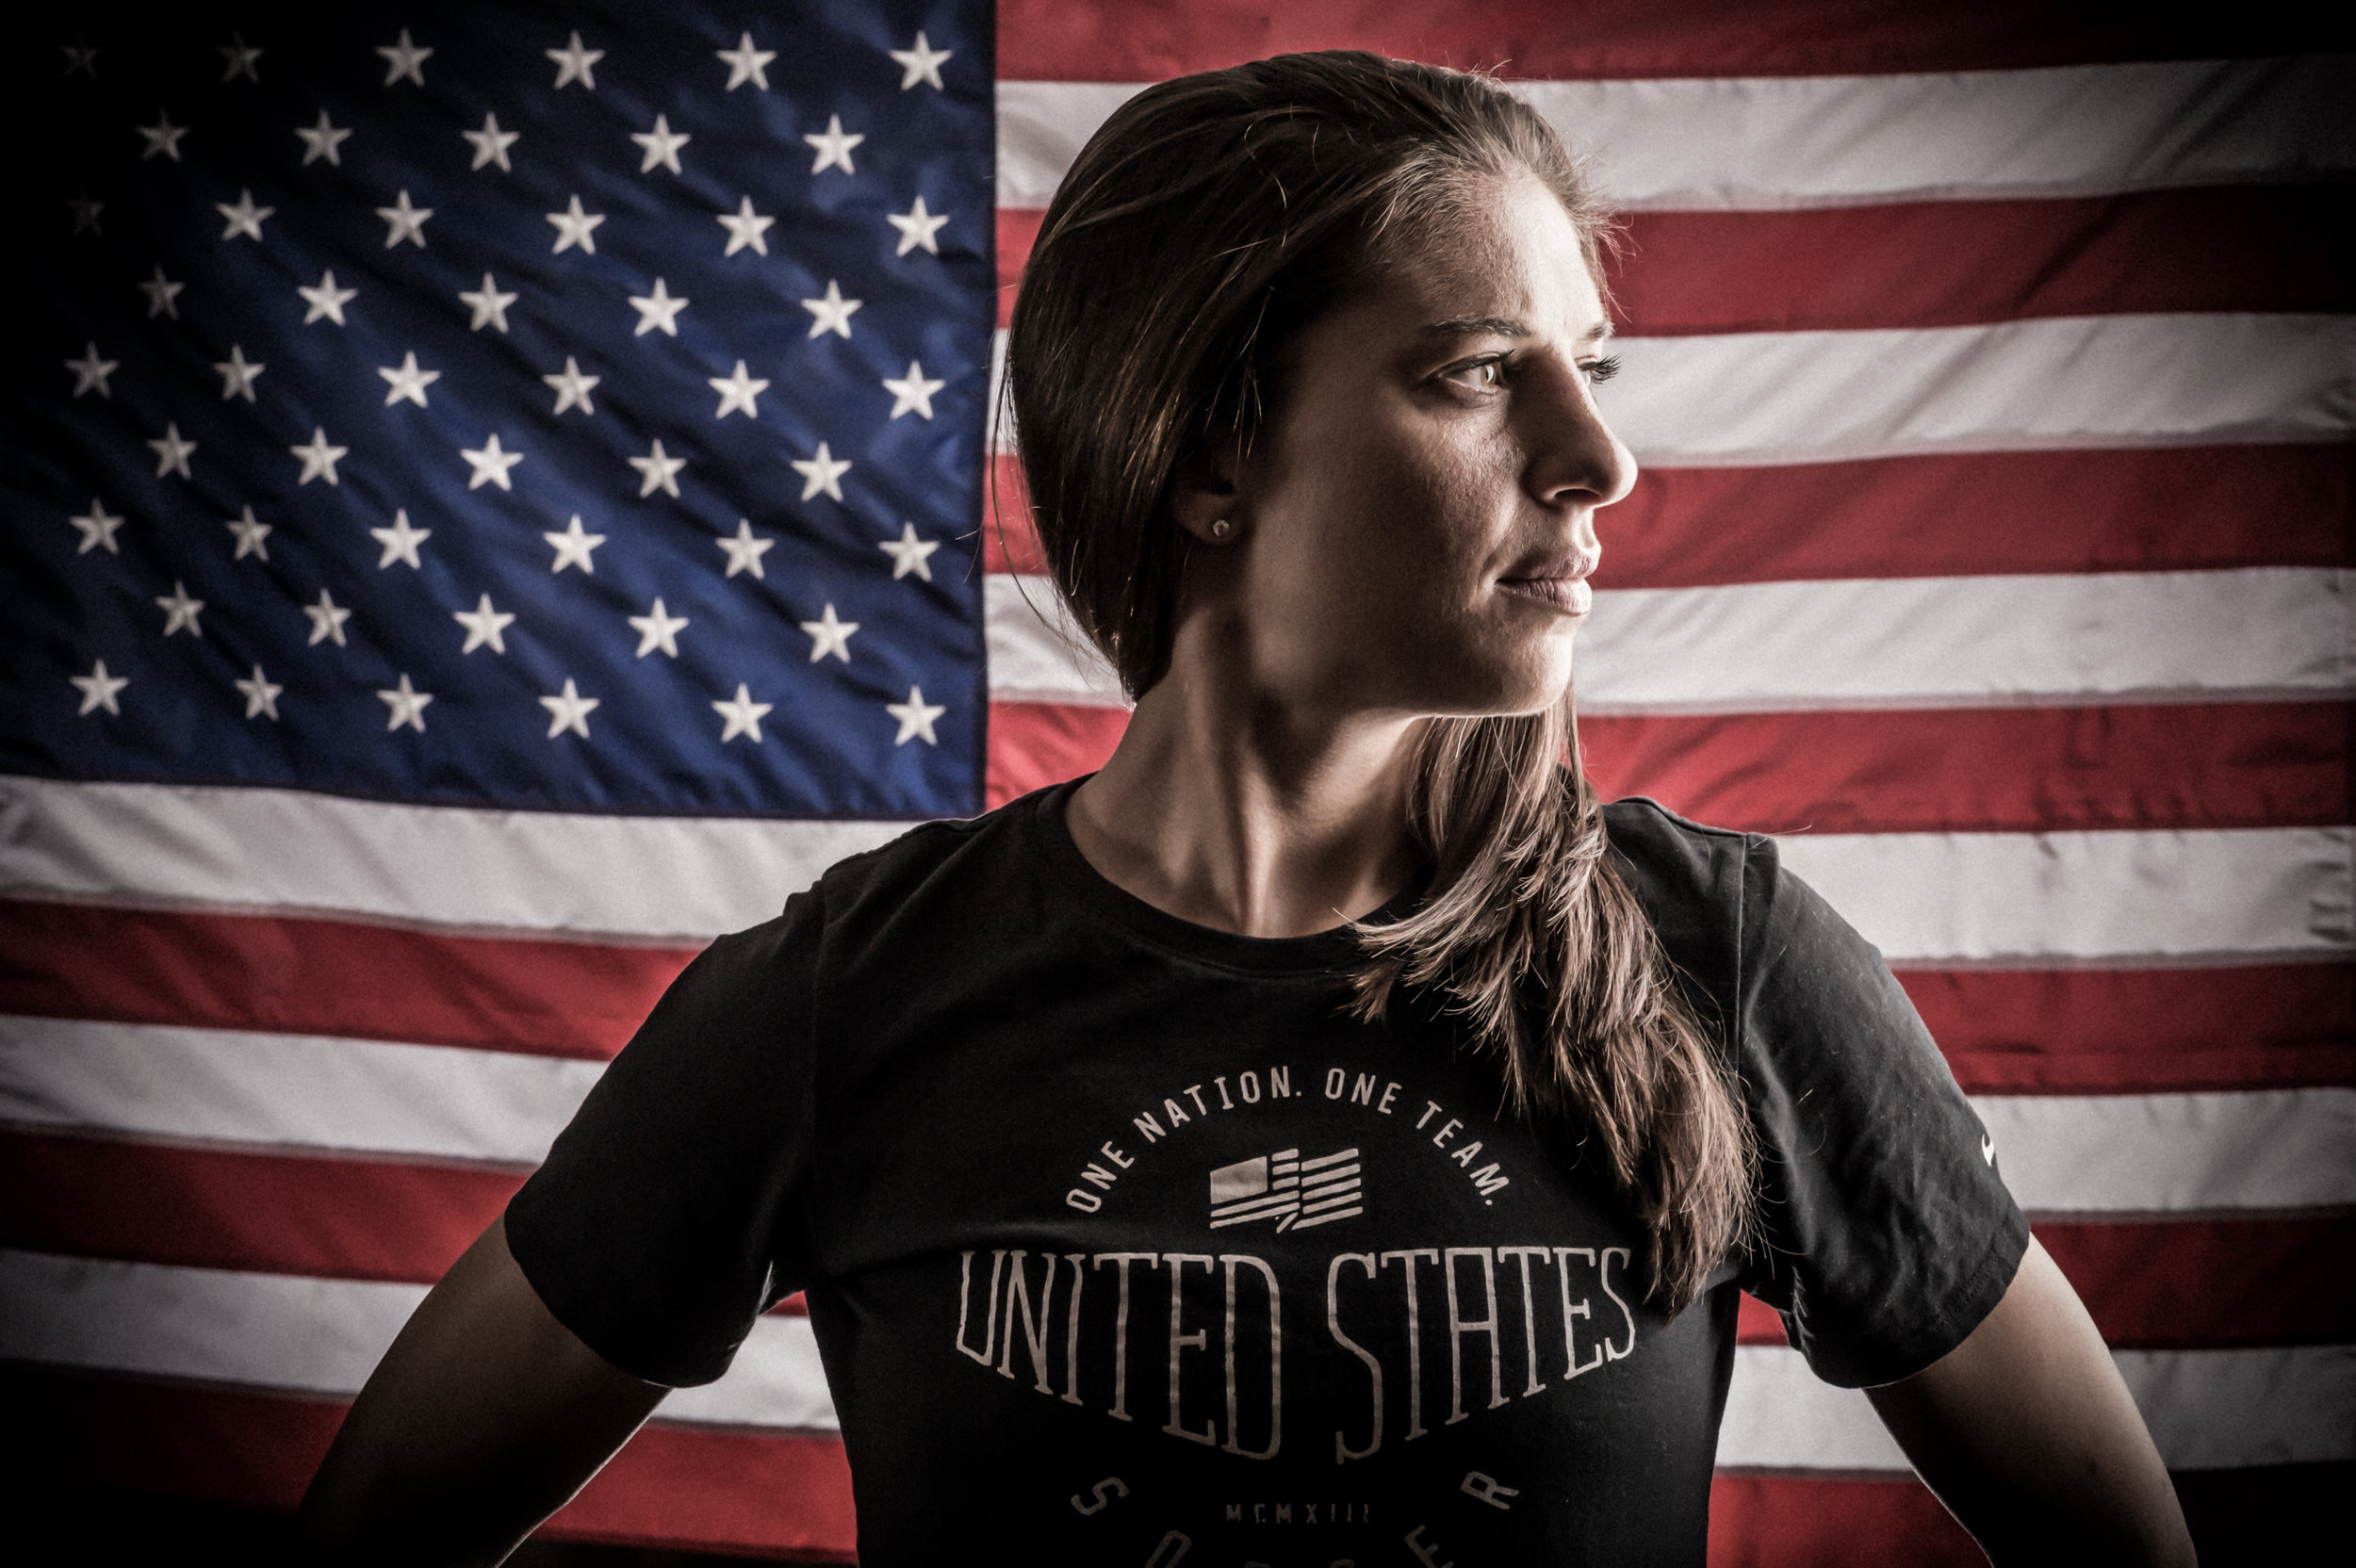 Carl Lloyd, USWNT 2015 portrait shoot, NYC.